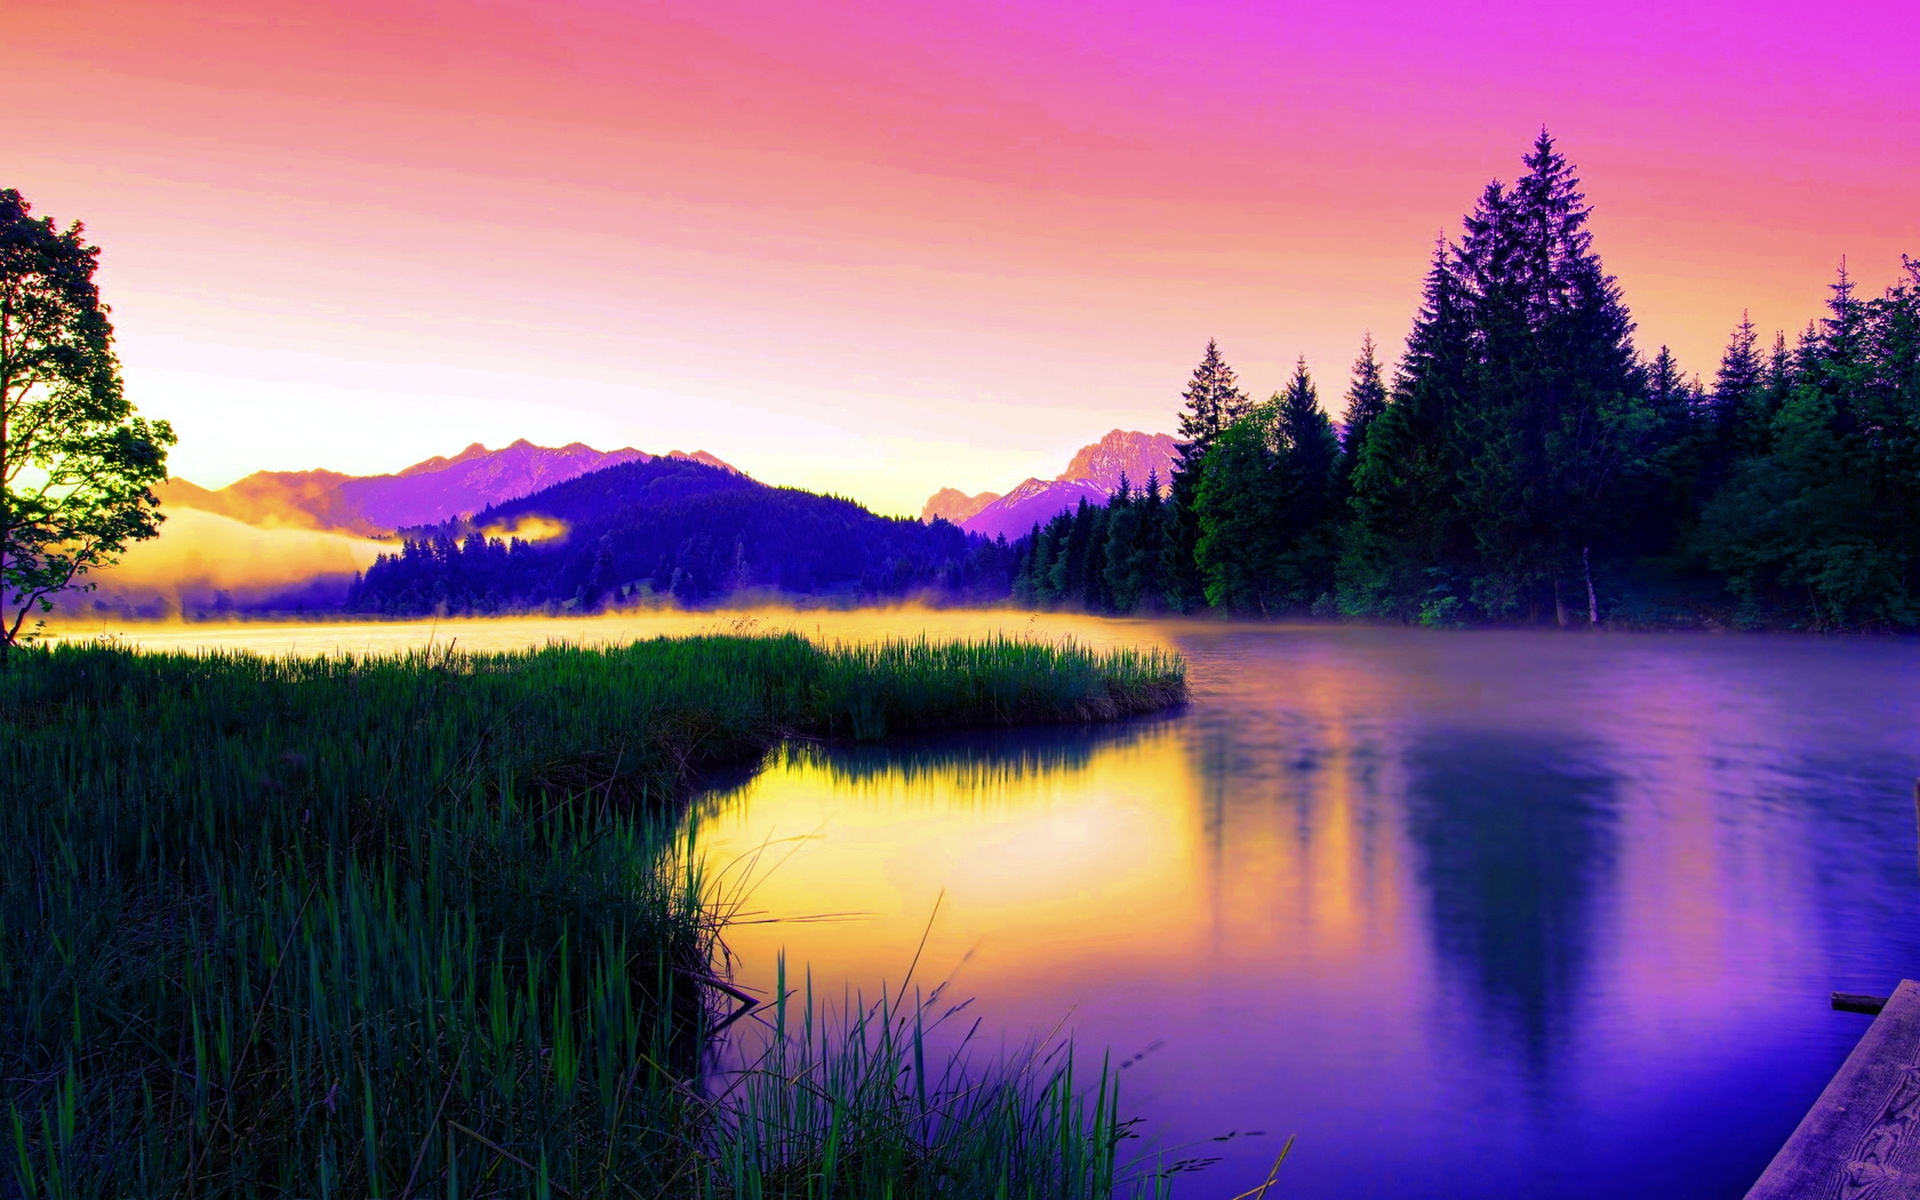 Lake Wallpaper Splendid - HD Desktop Wallpapers